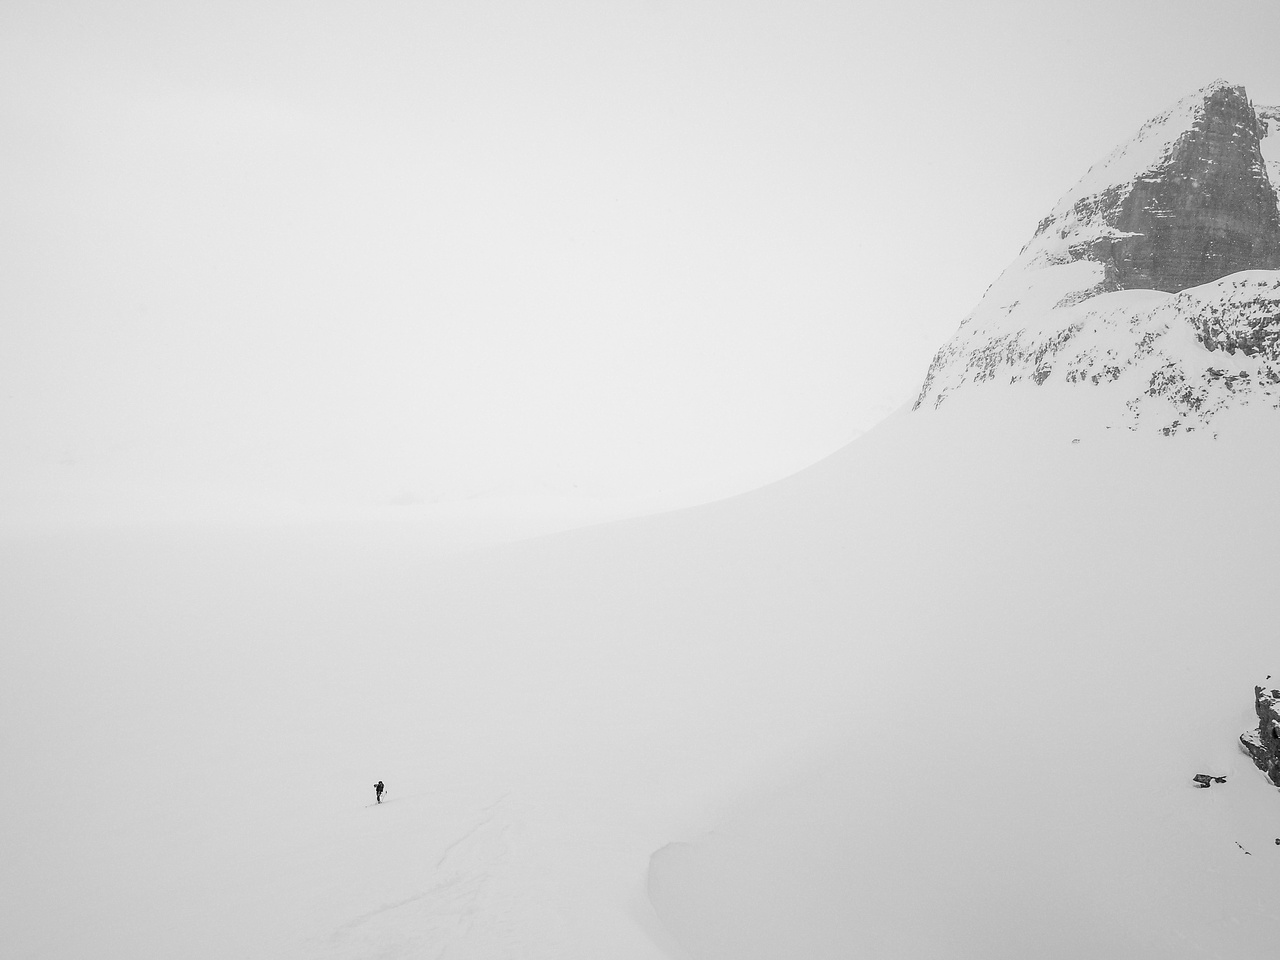 The icefield is totally socked in as we ski off the arete.